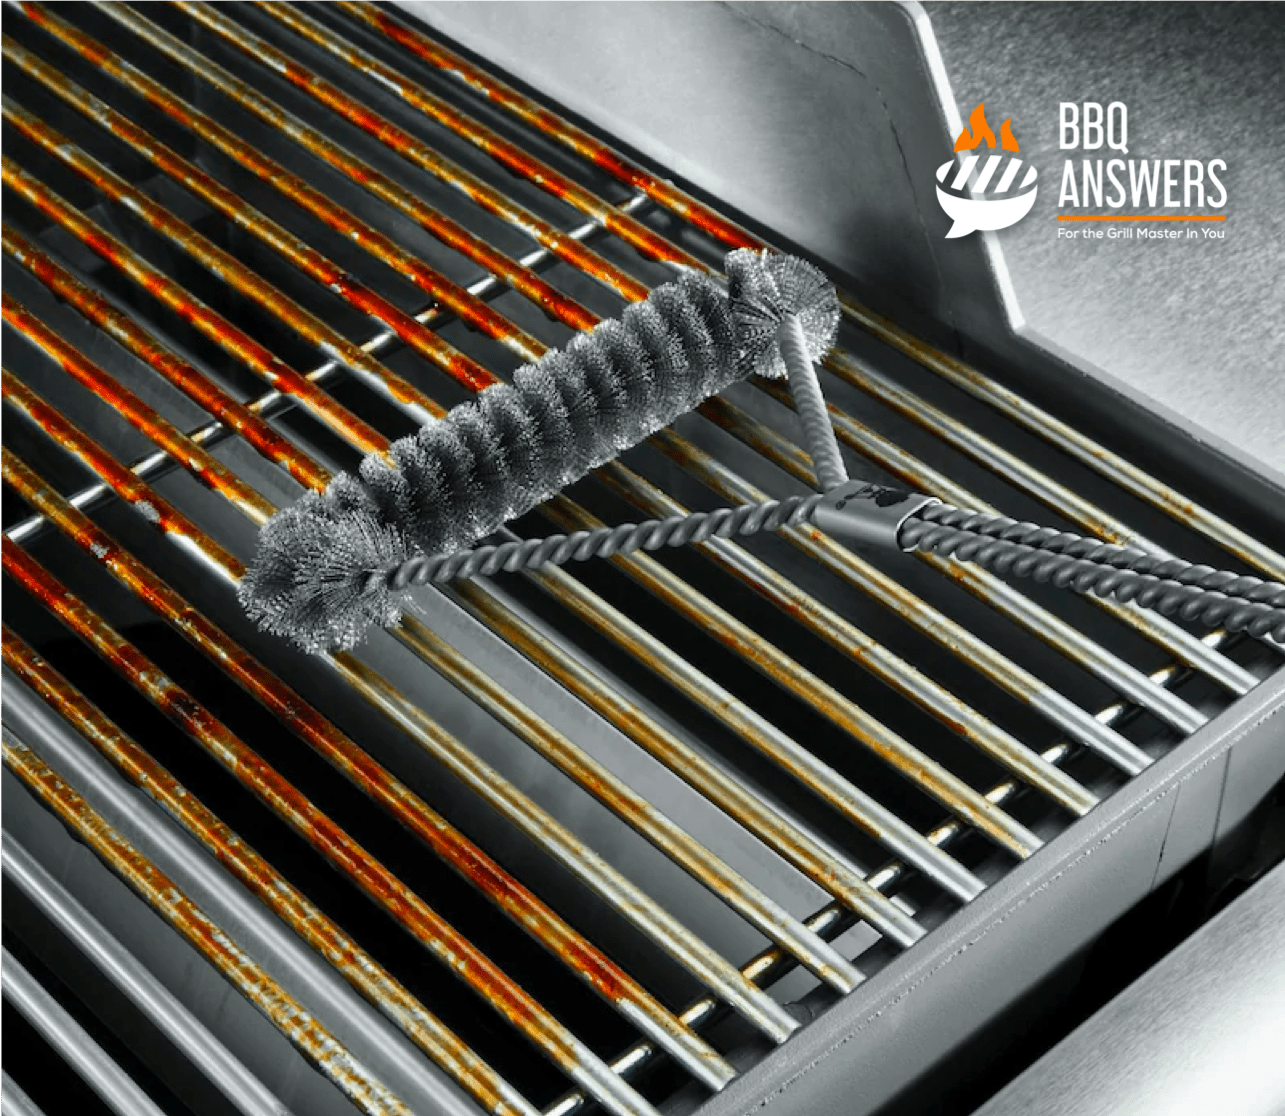 Cleaning BBQ Grills _ Cleaning grill grates using Brush _ BBQanswers